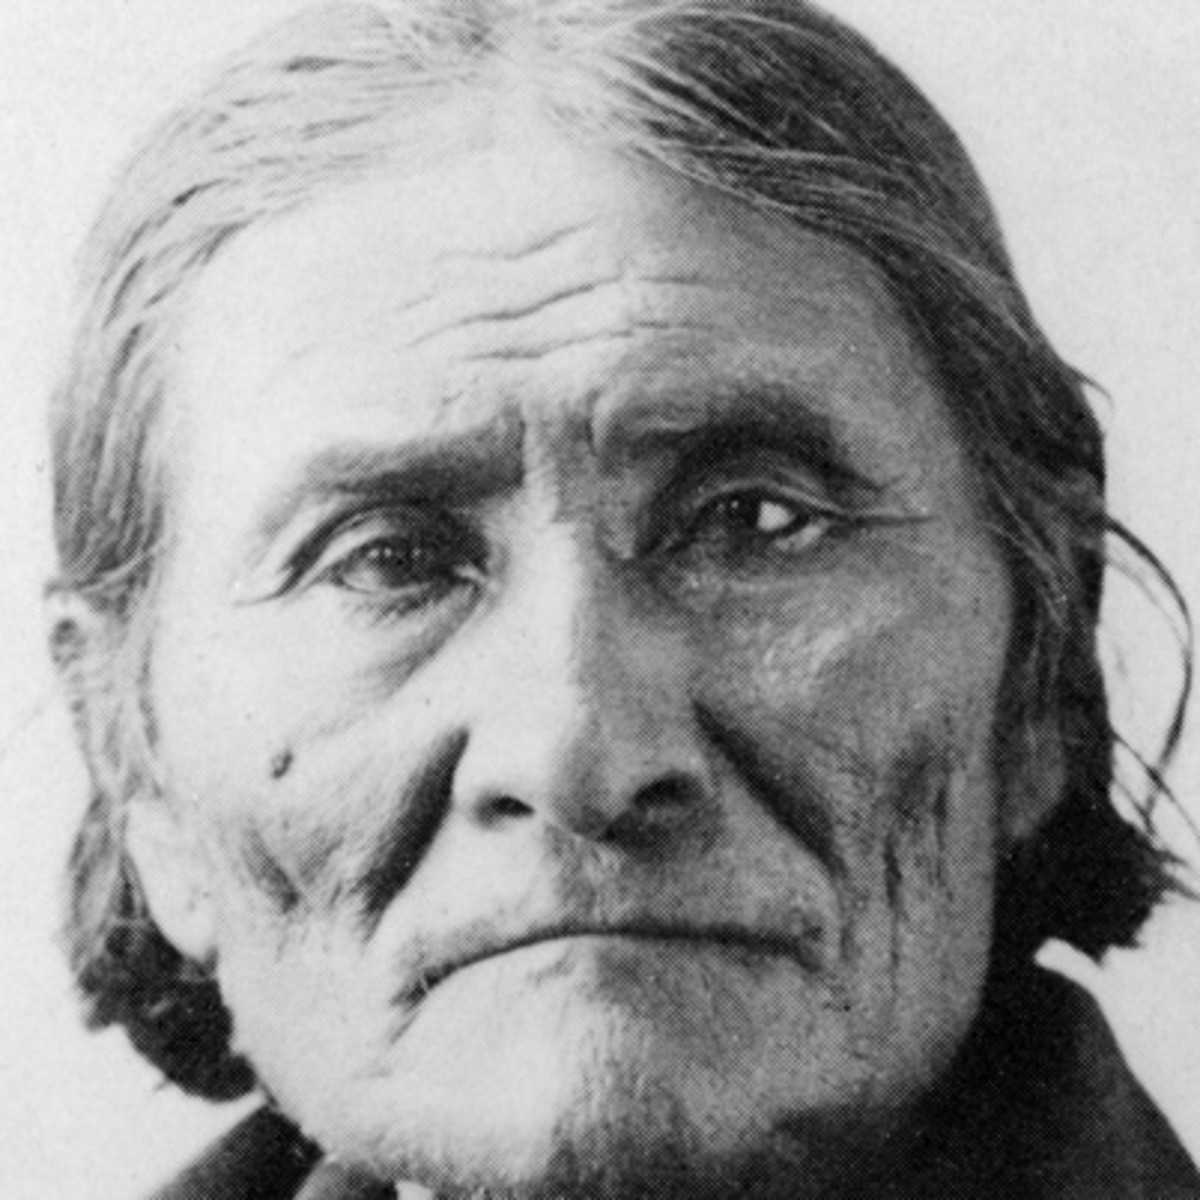 Quotes By Famous Indian Personalities: Apache, Death & Birthplace